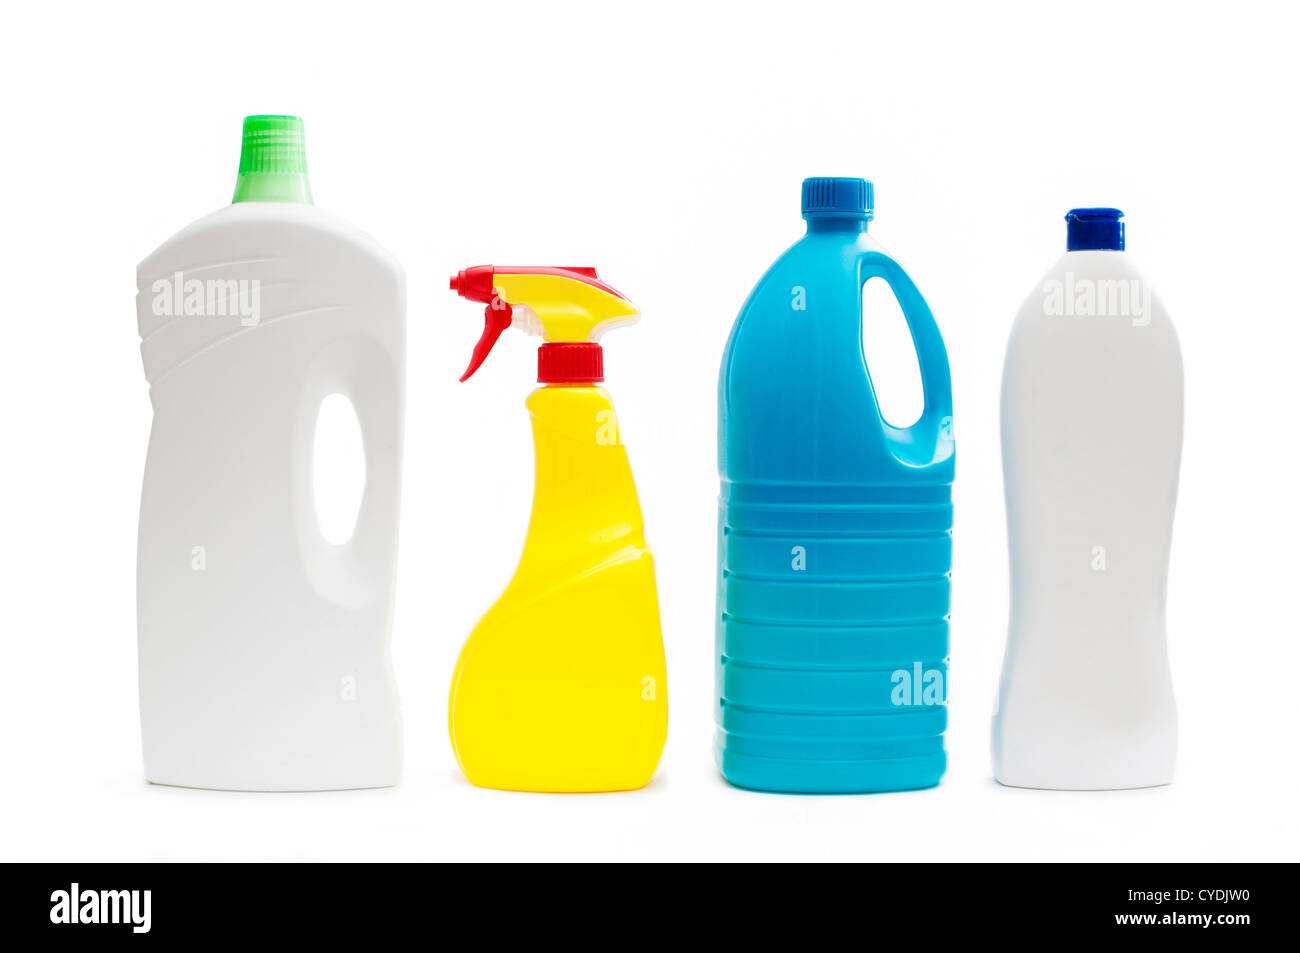 Plastic containers of cleaning products, isolated on white